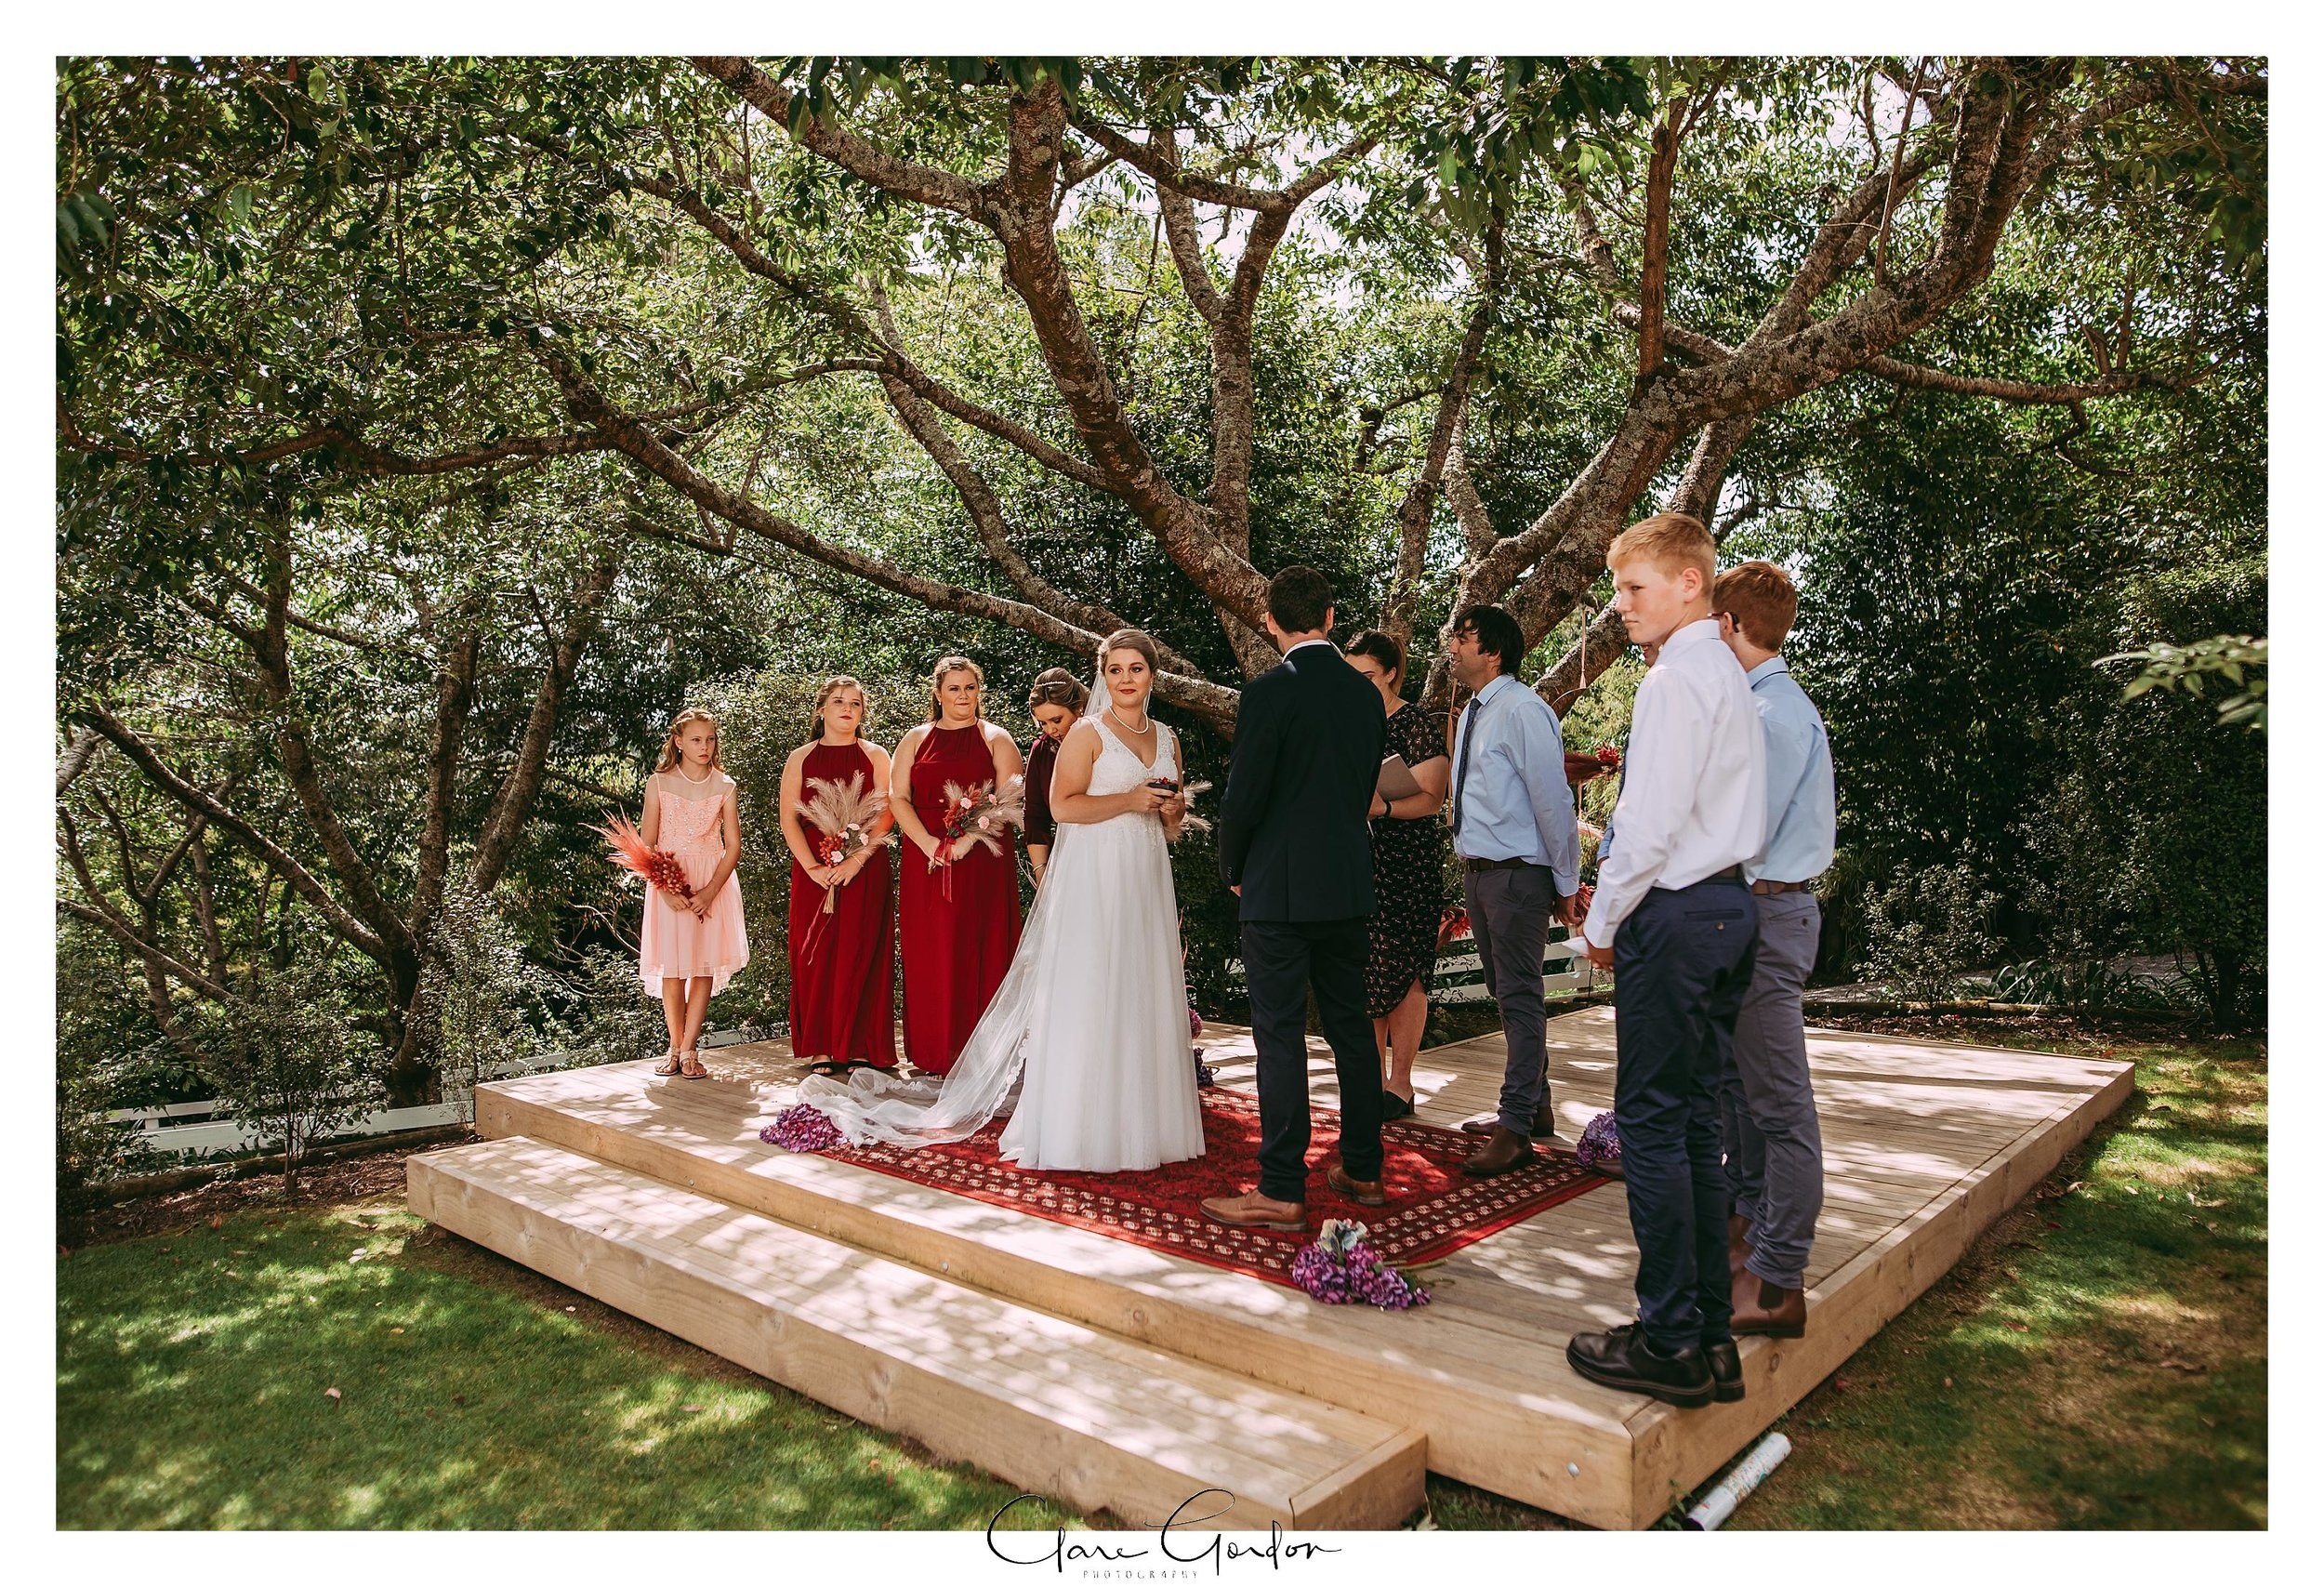 Charlemagne-Lodge-Tauranga-wedding-photo (93).jpg